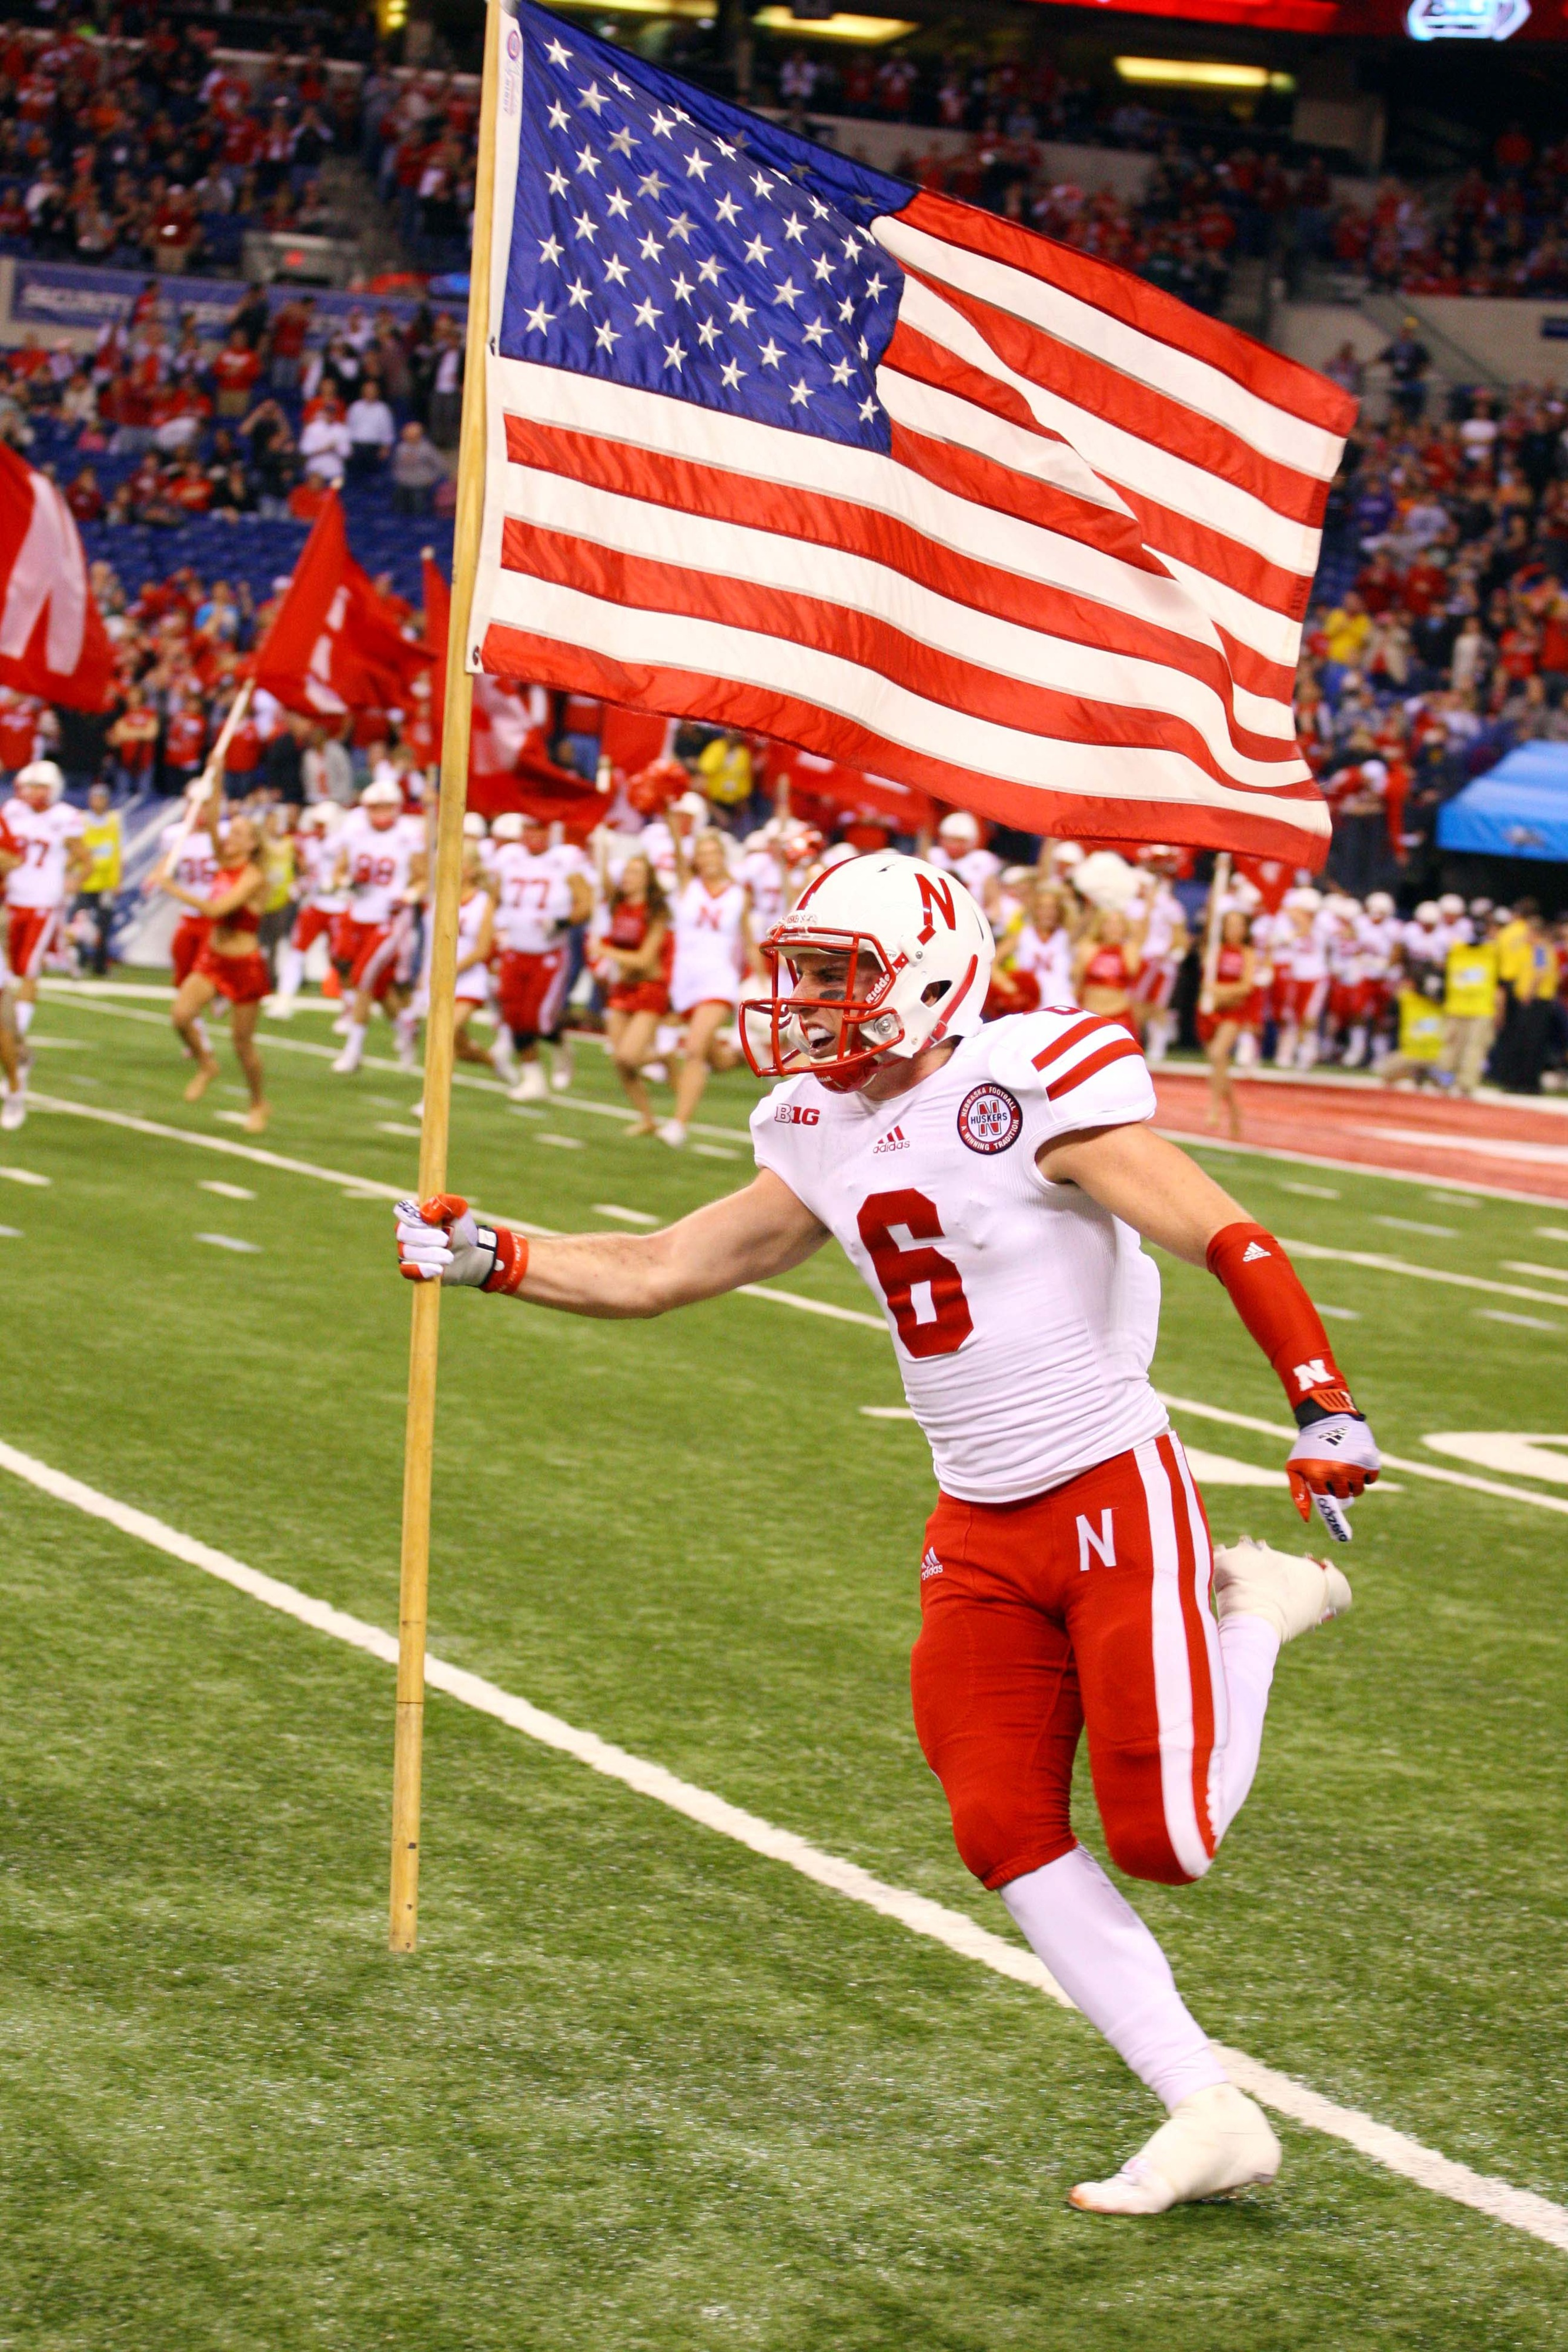 Huskers. America. College Football. What else do you need?!?